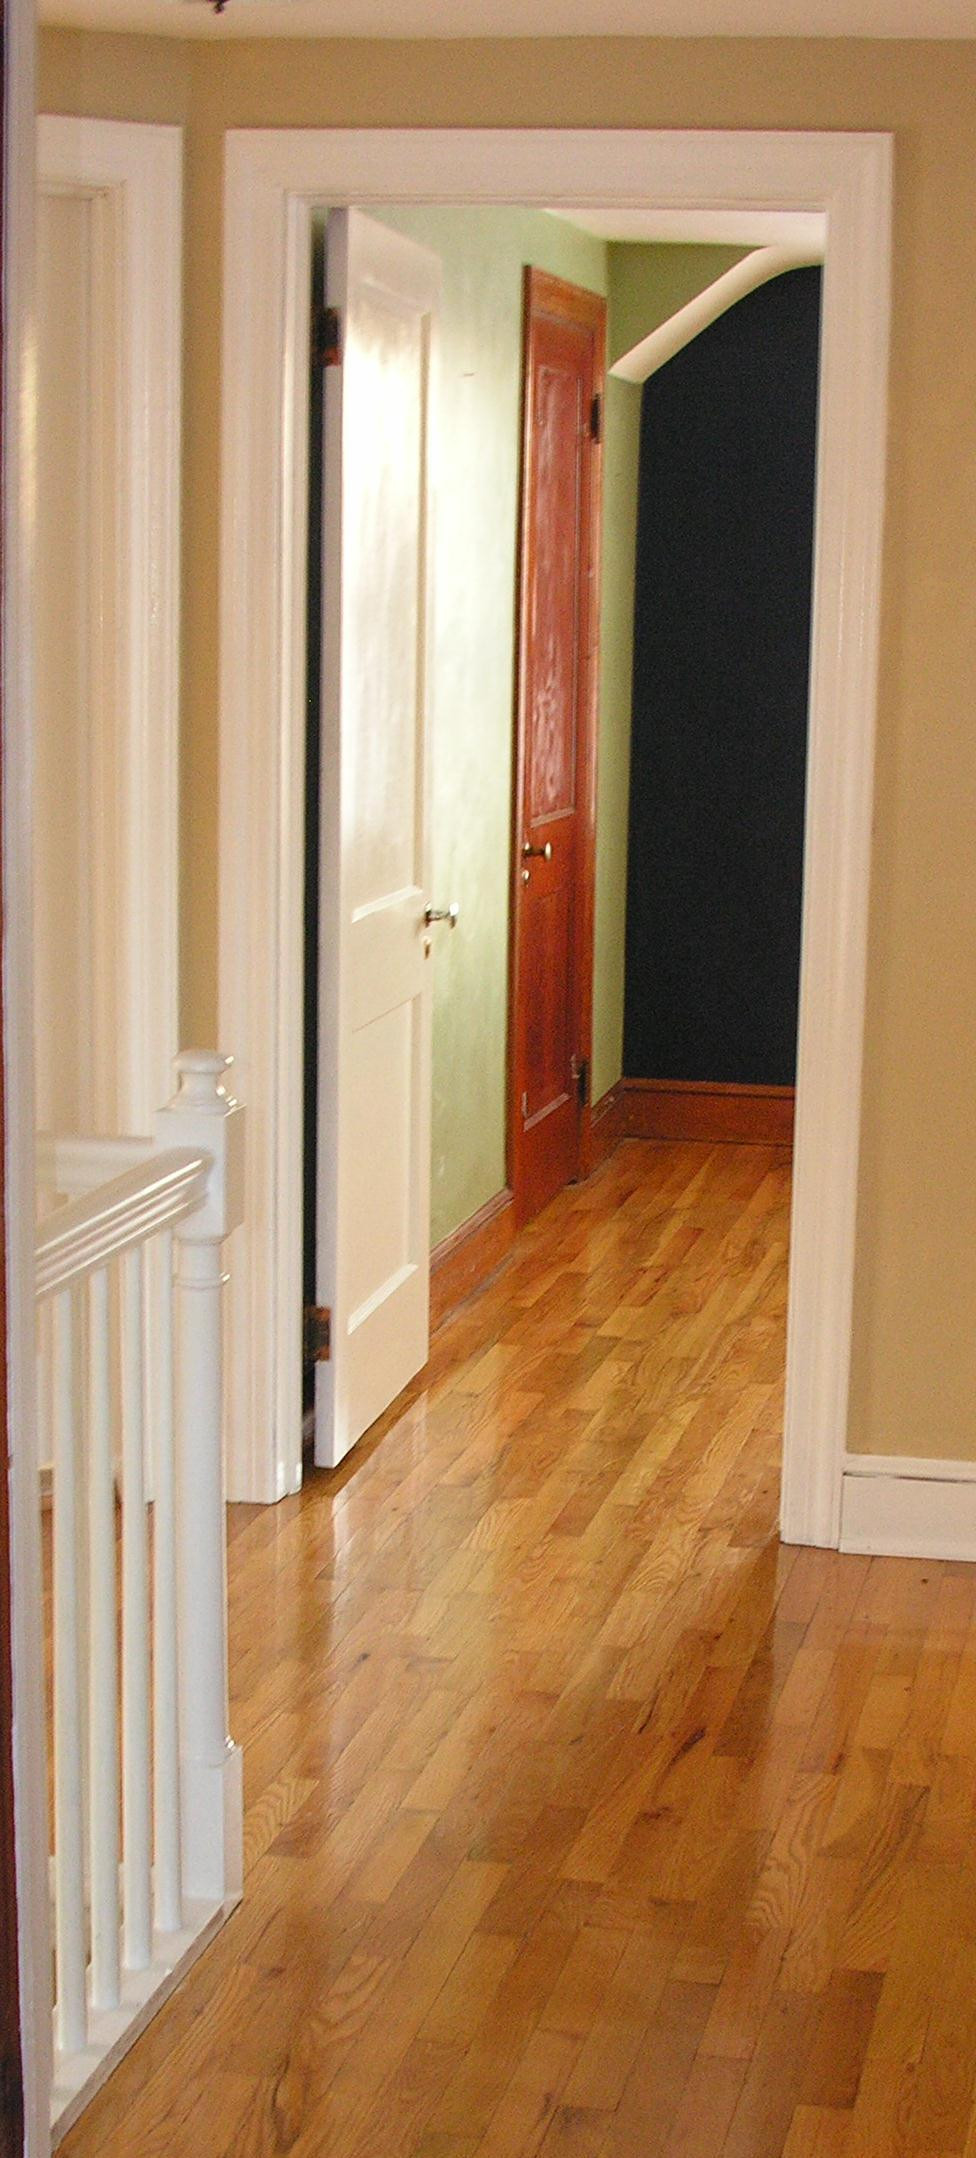 dustless hardwood floor refinishing pittsburgh pa of hardwood floor refinishing in pittsburgh with brooks hardwood floor refinishing a pittsburgh based hardwood flooring company offers you a free estimate and a hardwood floor refinishing service at the